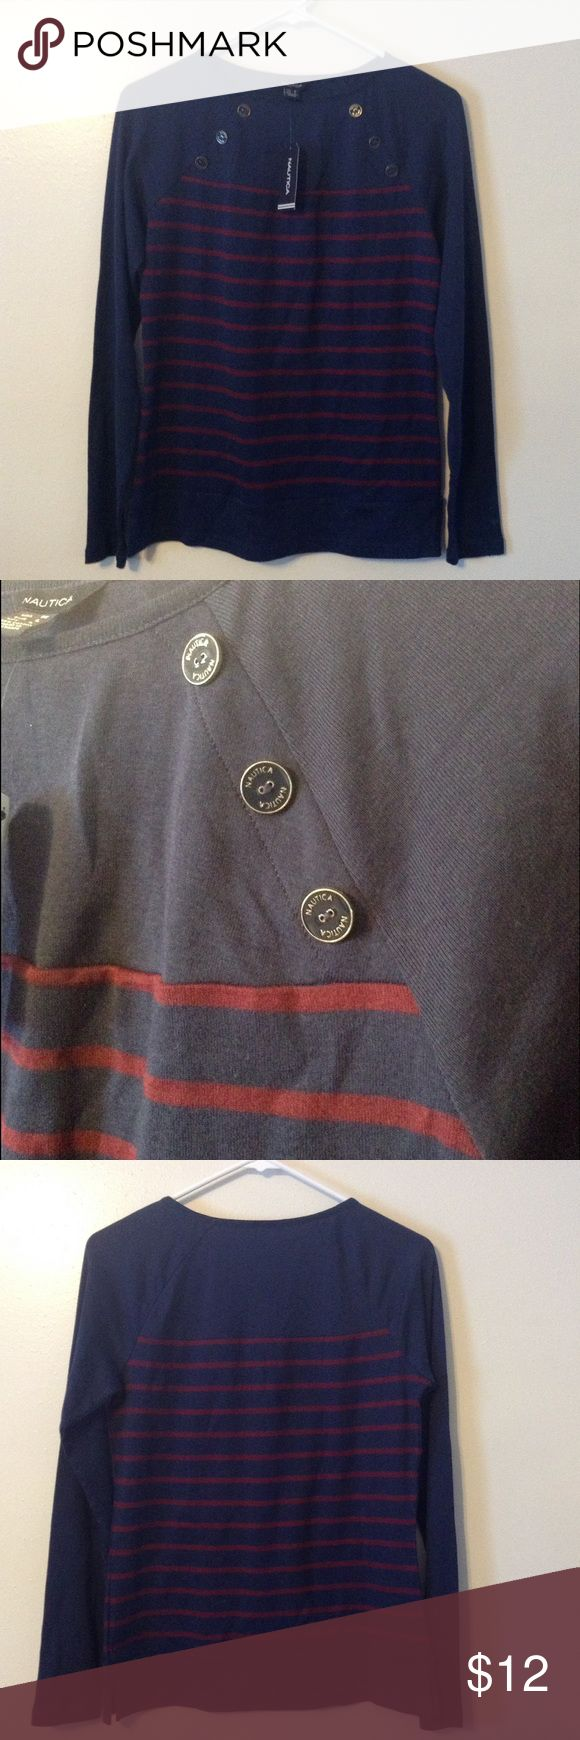 Nautical sailor striped tee New with tags. Great with shorts or a skirt. Nautica Tops Tees - Long Sleeve